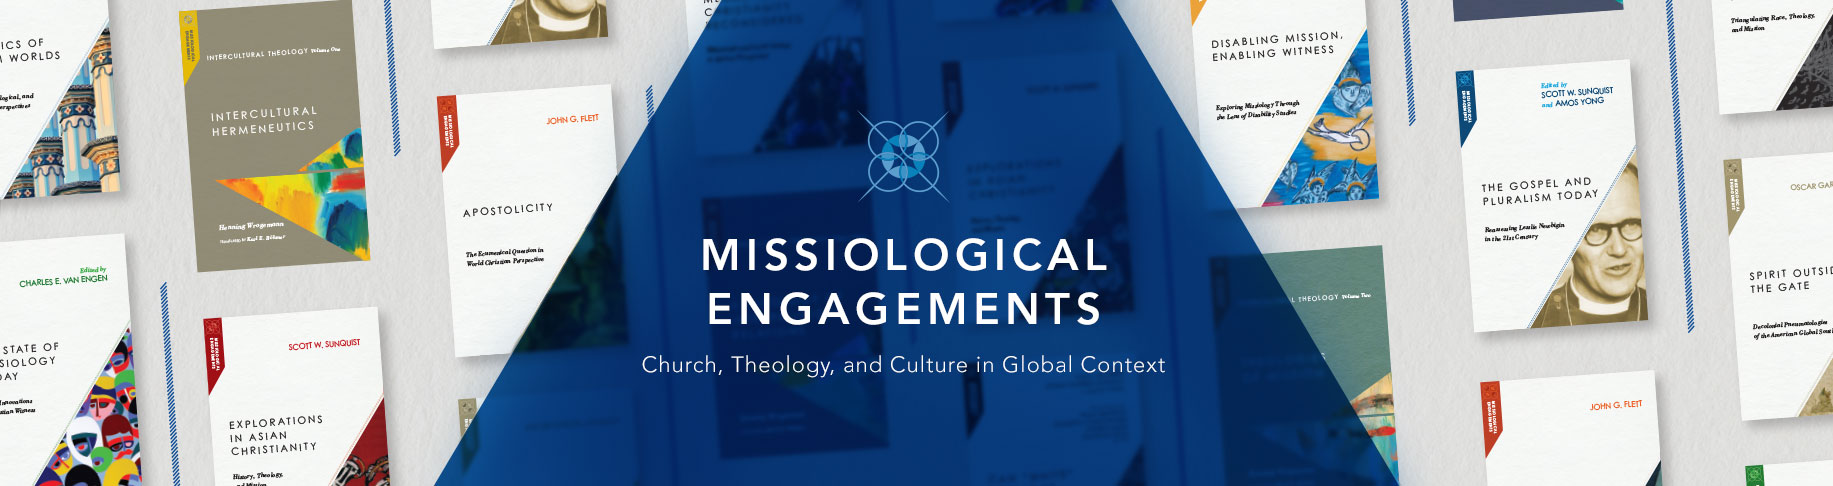 Missiological Engagements Series